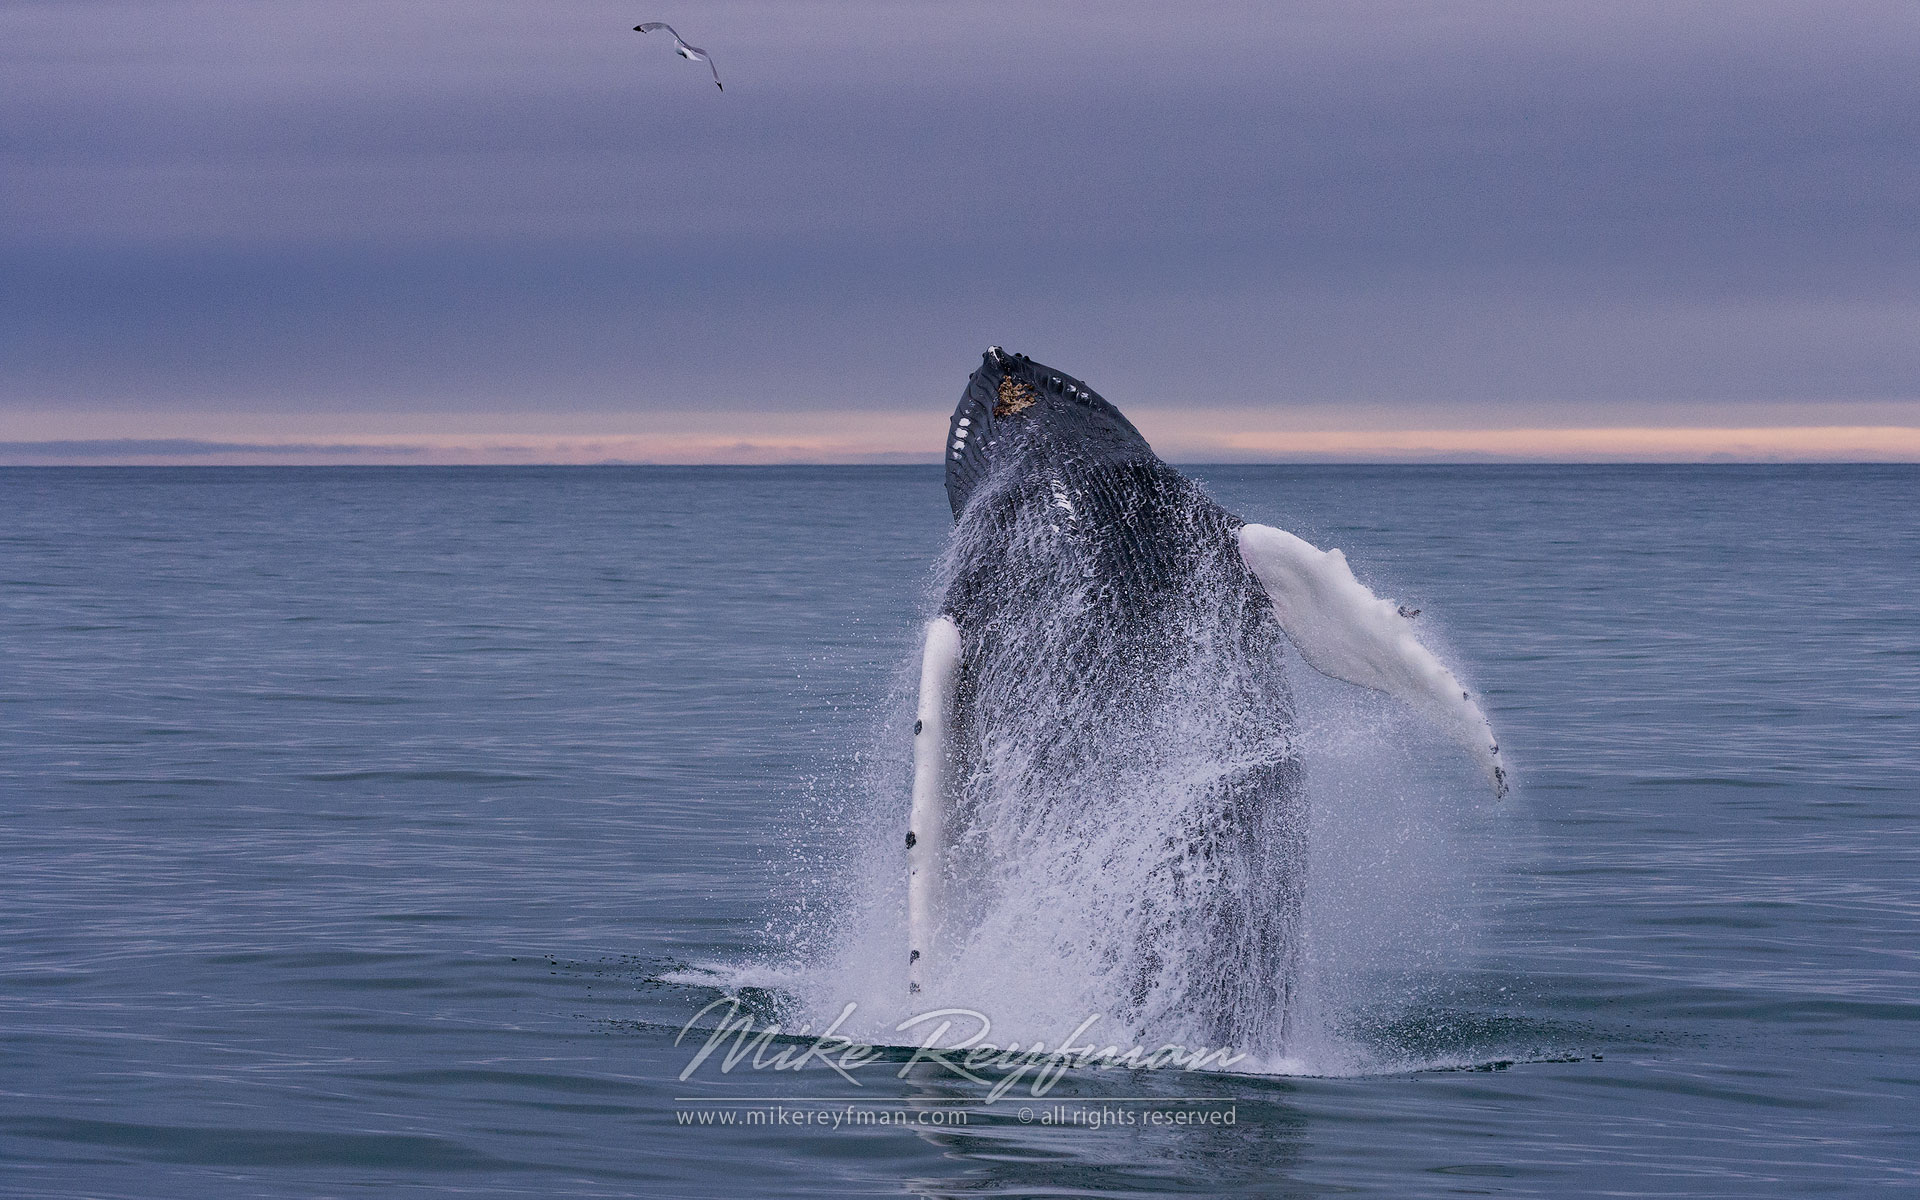 Humback Whale (Megaptera novaeangeliae) breaching (jumping out of the water) near Spitsbergen, Svalbard. - Wildlife-Svalbard-Spitsbergen-Norway - Mike Reyfman Photography